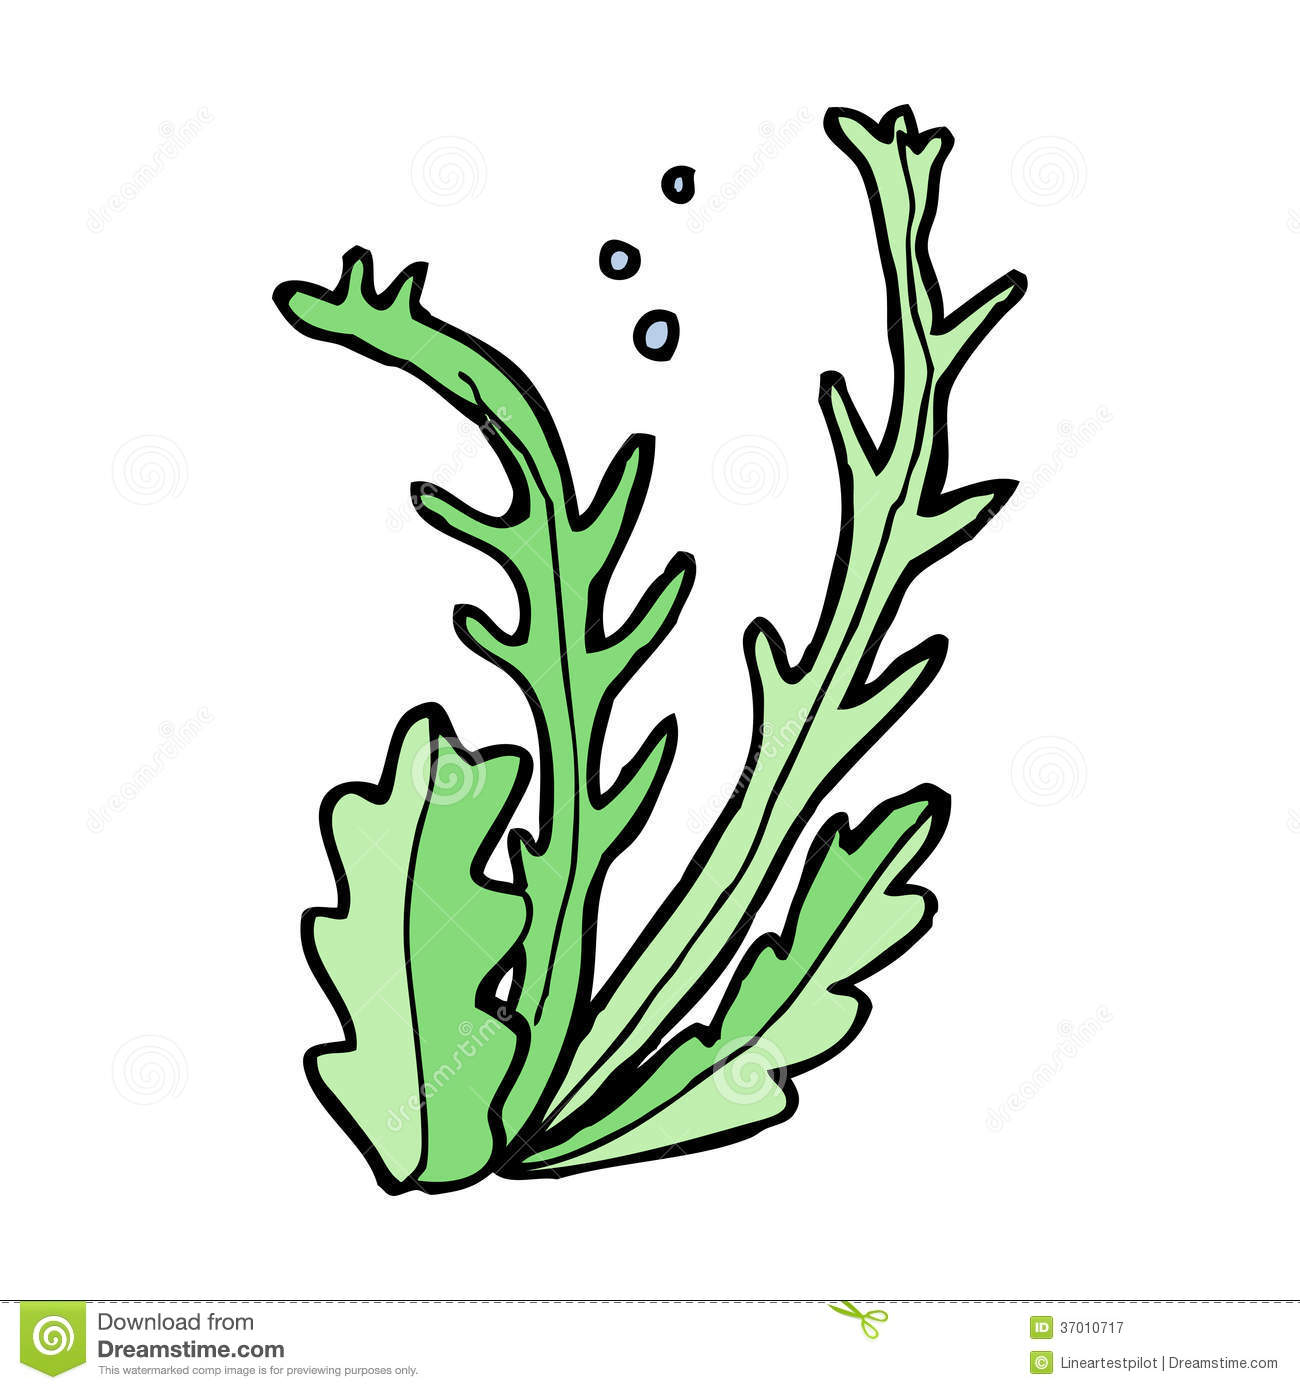 Seaweed Clipart   Clipart Panda   Free Clipart Images